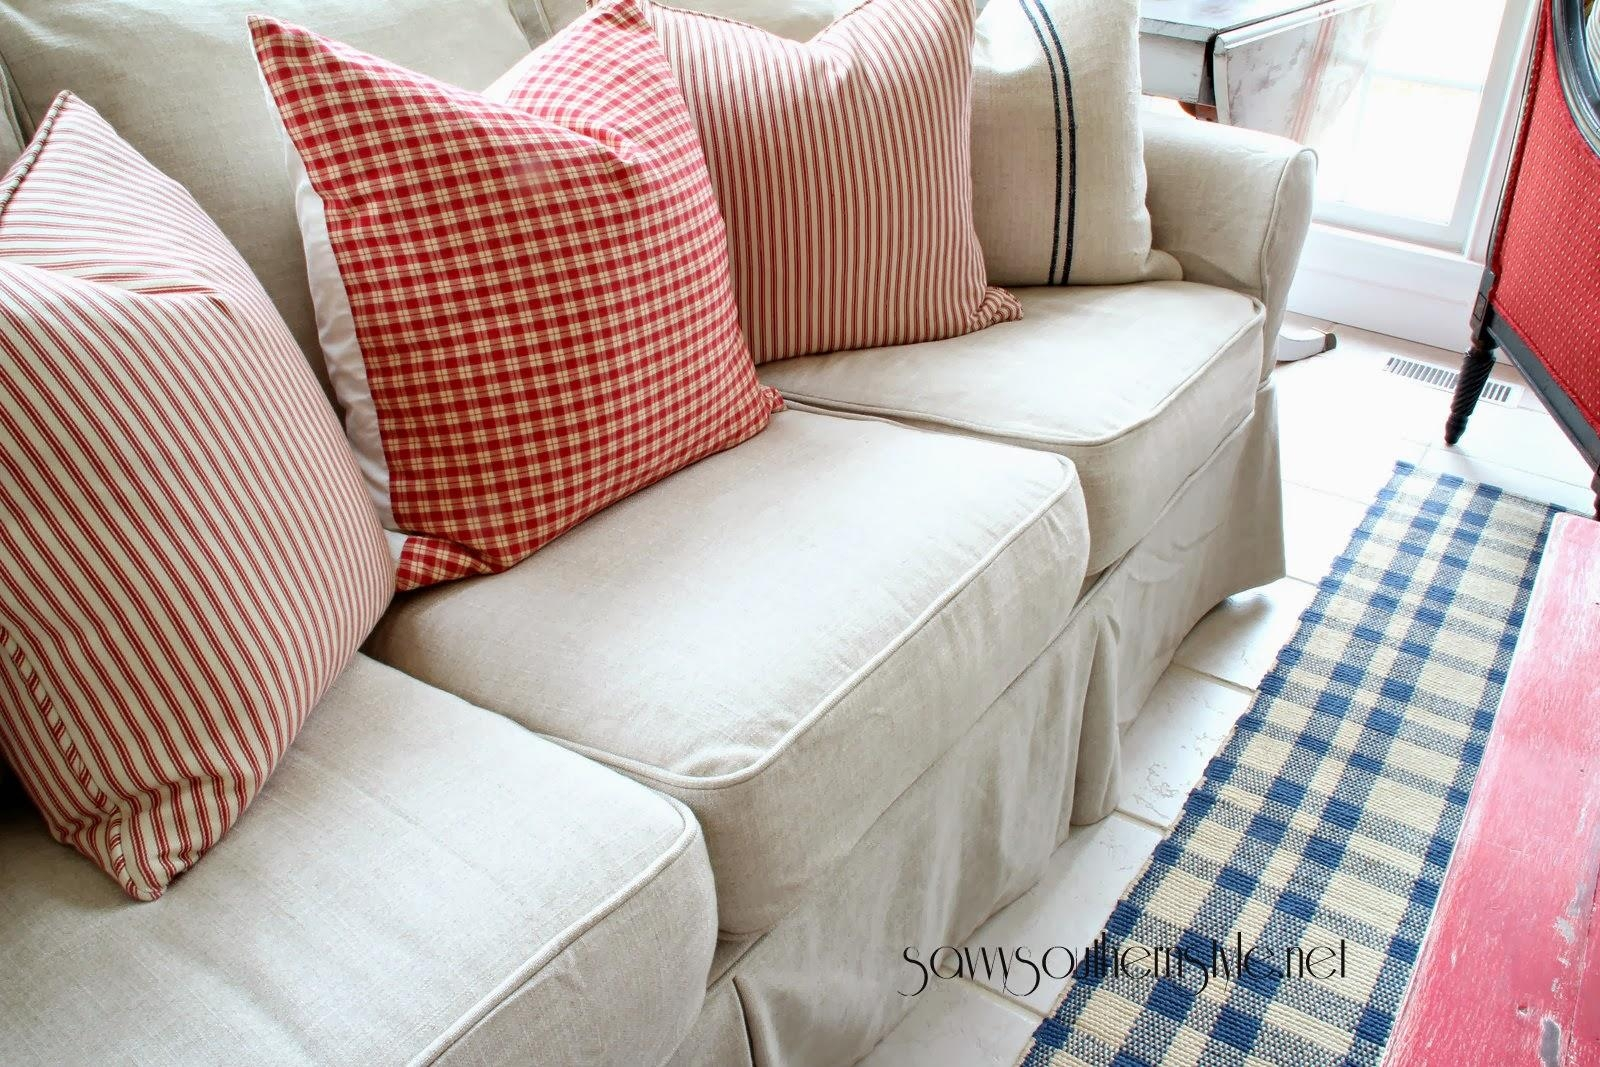 Custom Slipcovers And Couch Cover For Any Sofa Online Regarding Canvas Slipcover Sofas (Image 6 of 20)